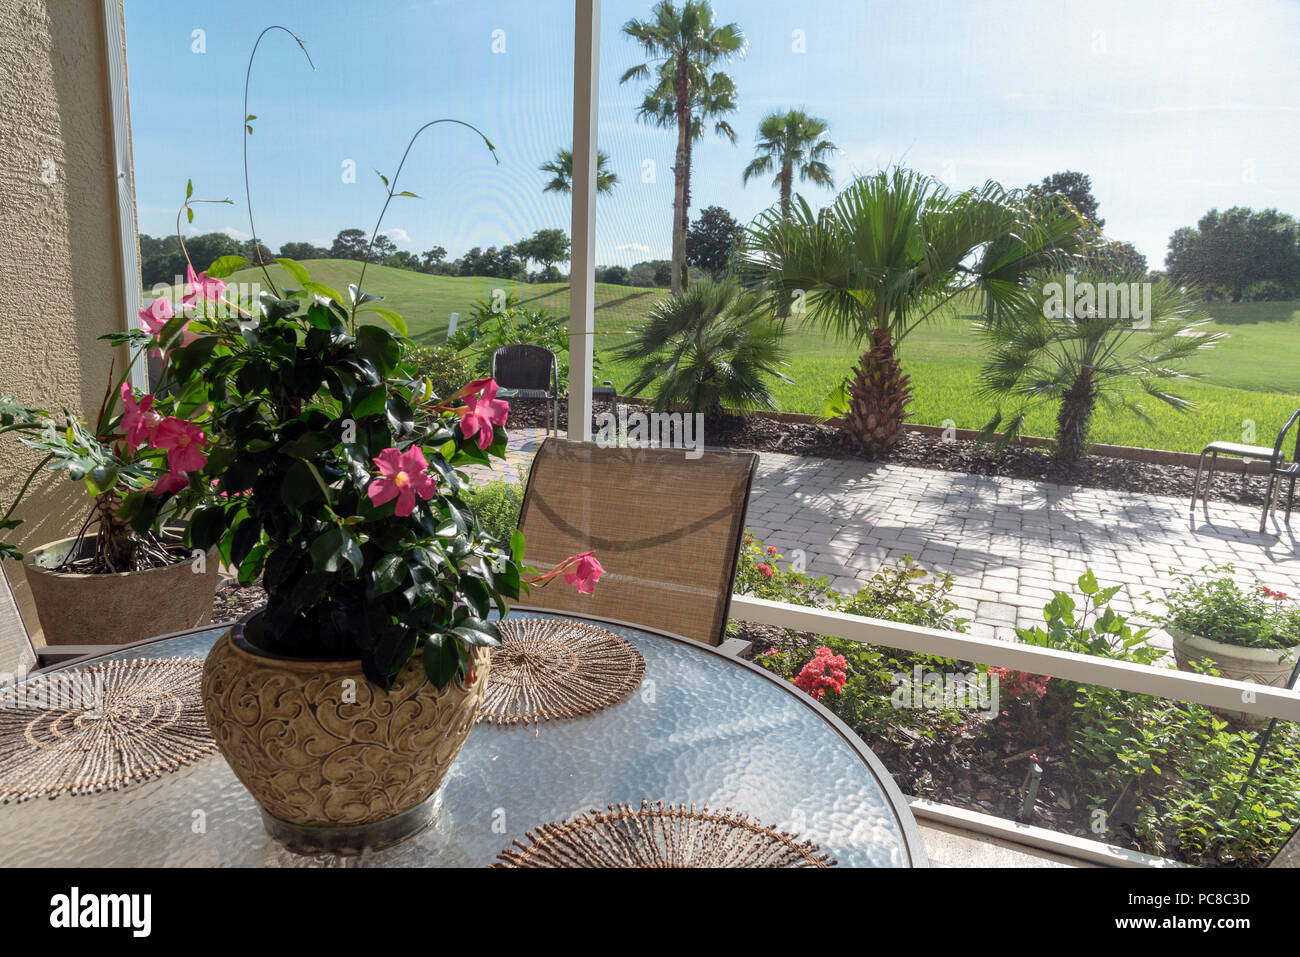 View from a lanai patio through an insect screening onto a golf course. Florida, USA - Stock Image